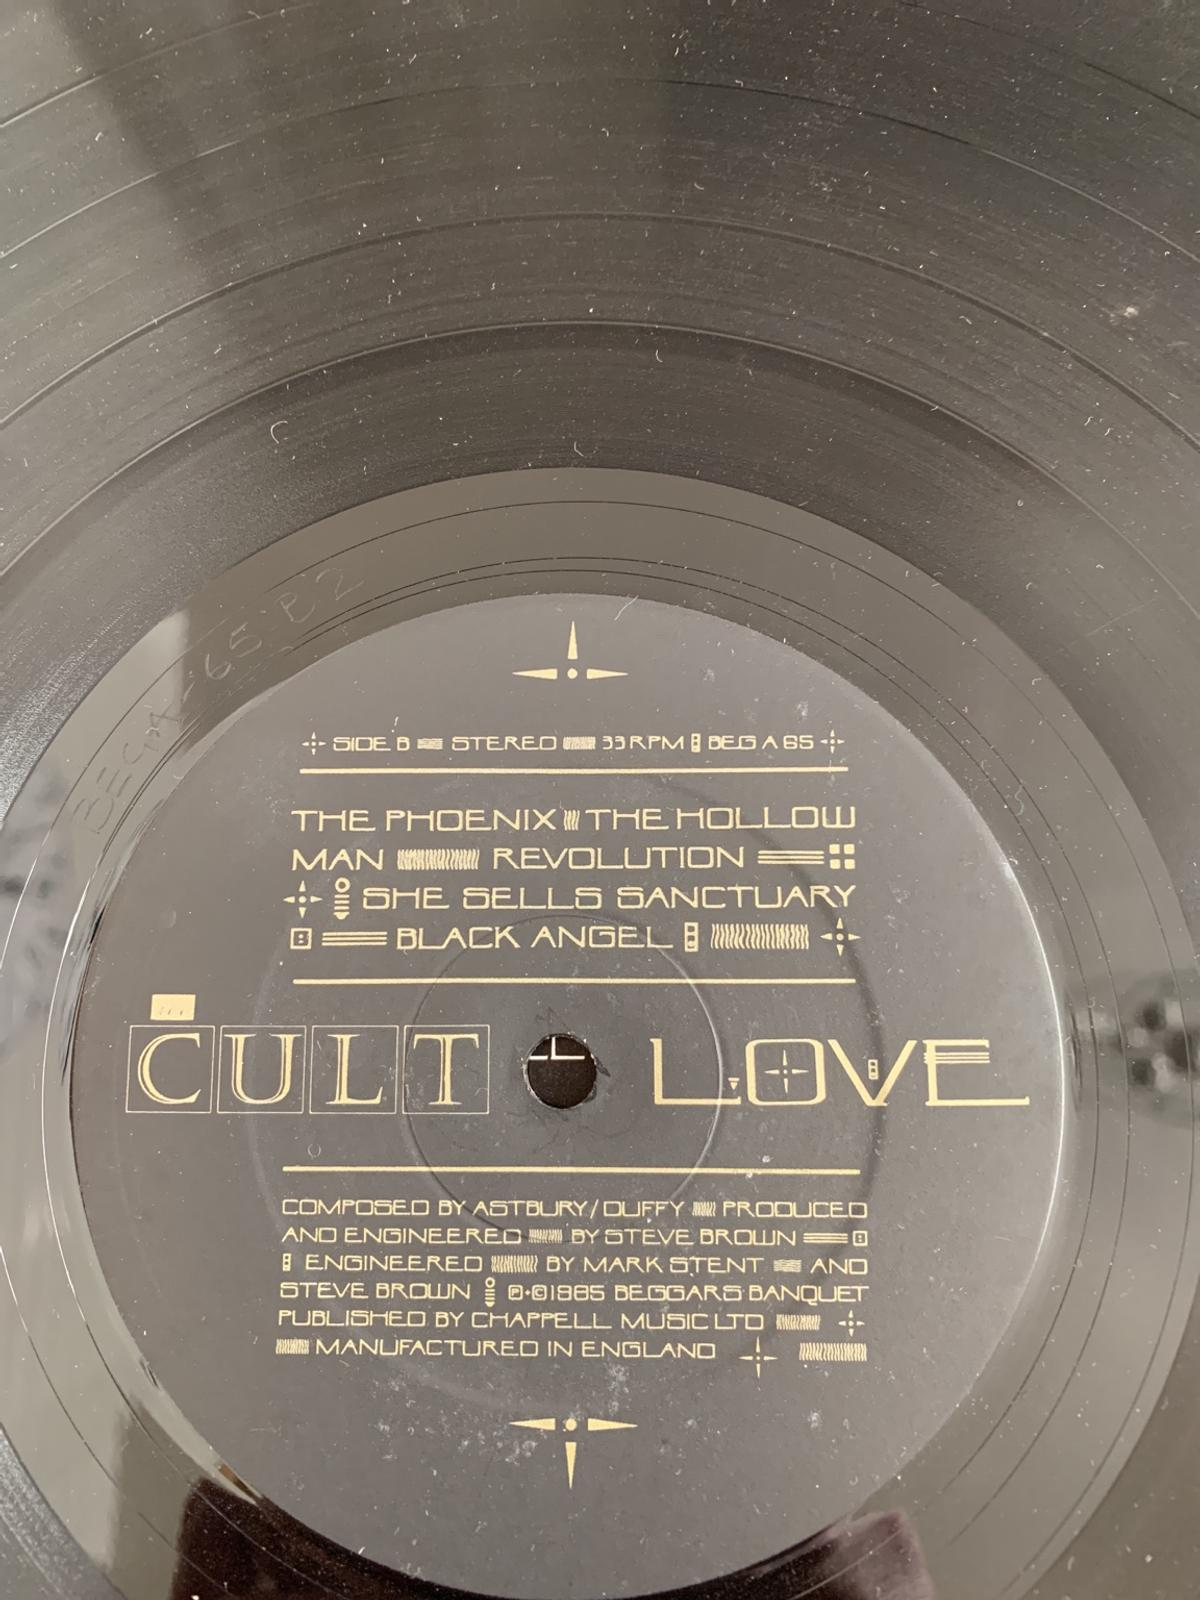 The Cult Vinyl Record LP in Cannock Chase for £5 00 for sale